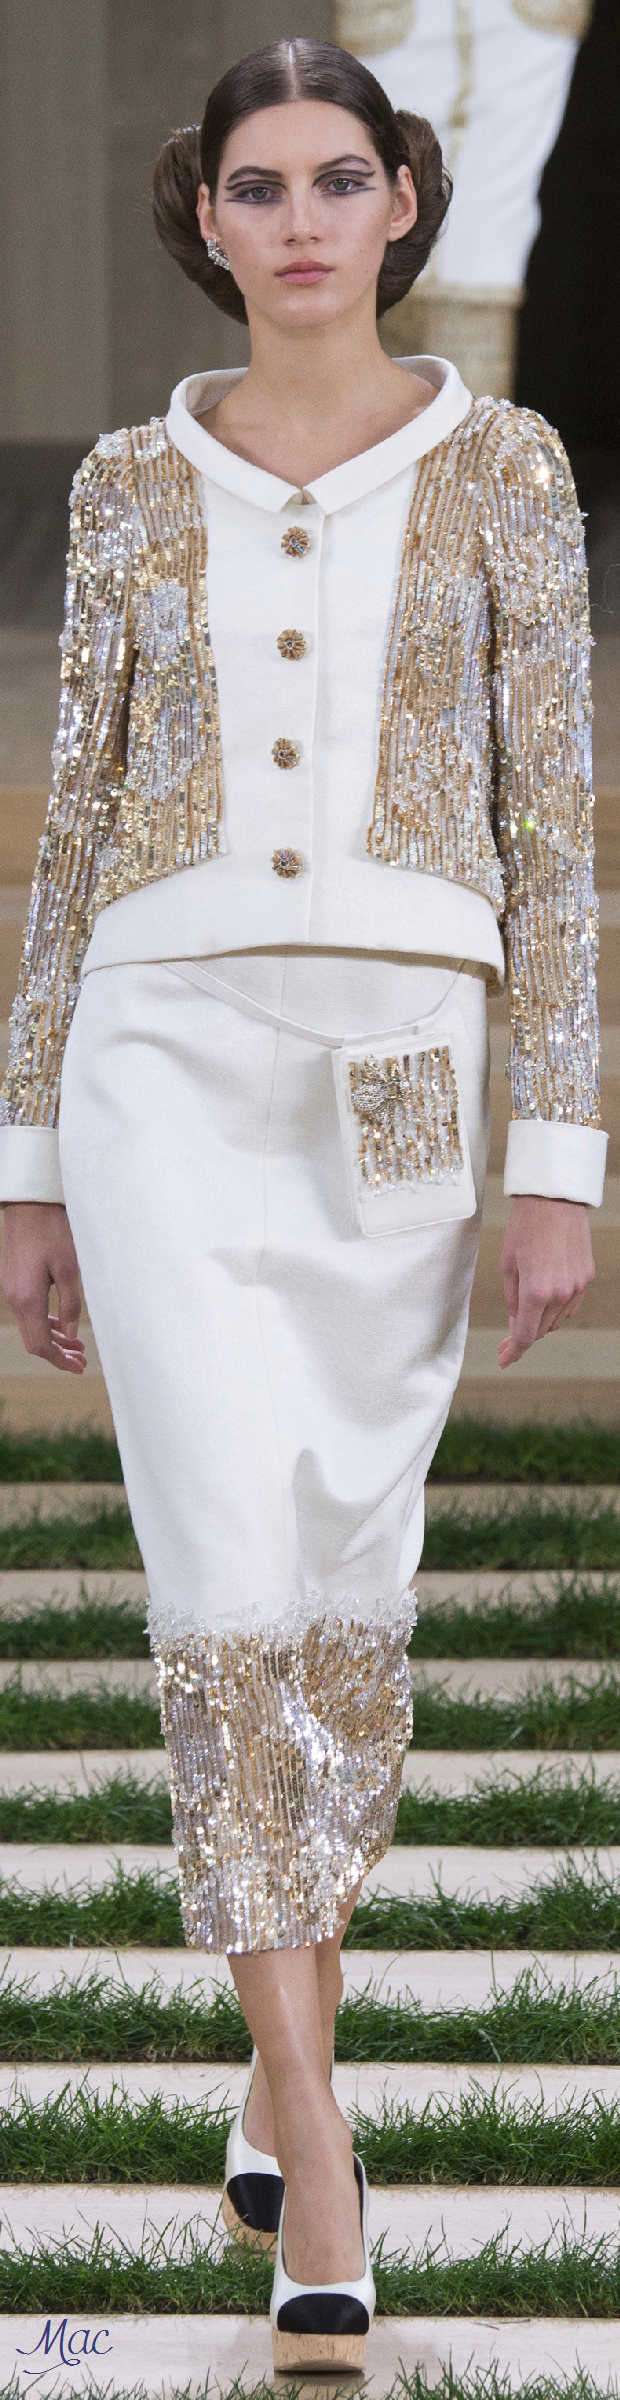 Spring 2016 Haute Couture Chanel. Modest Fashion doesn't mean ...